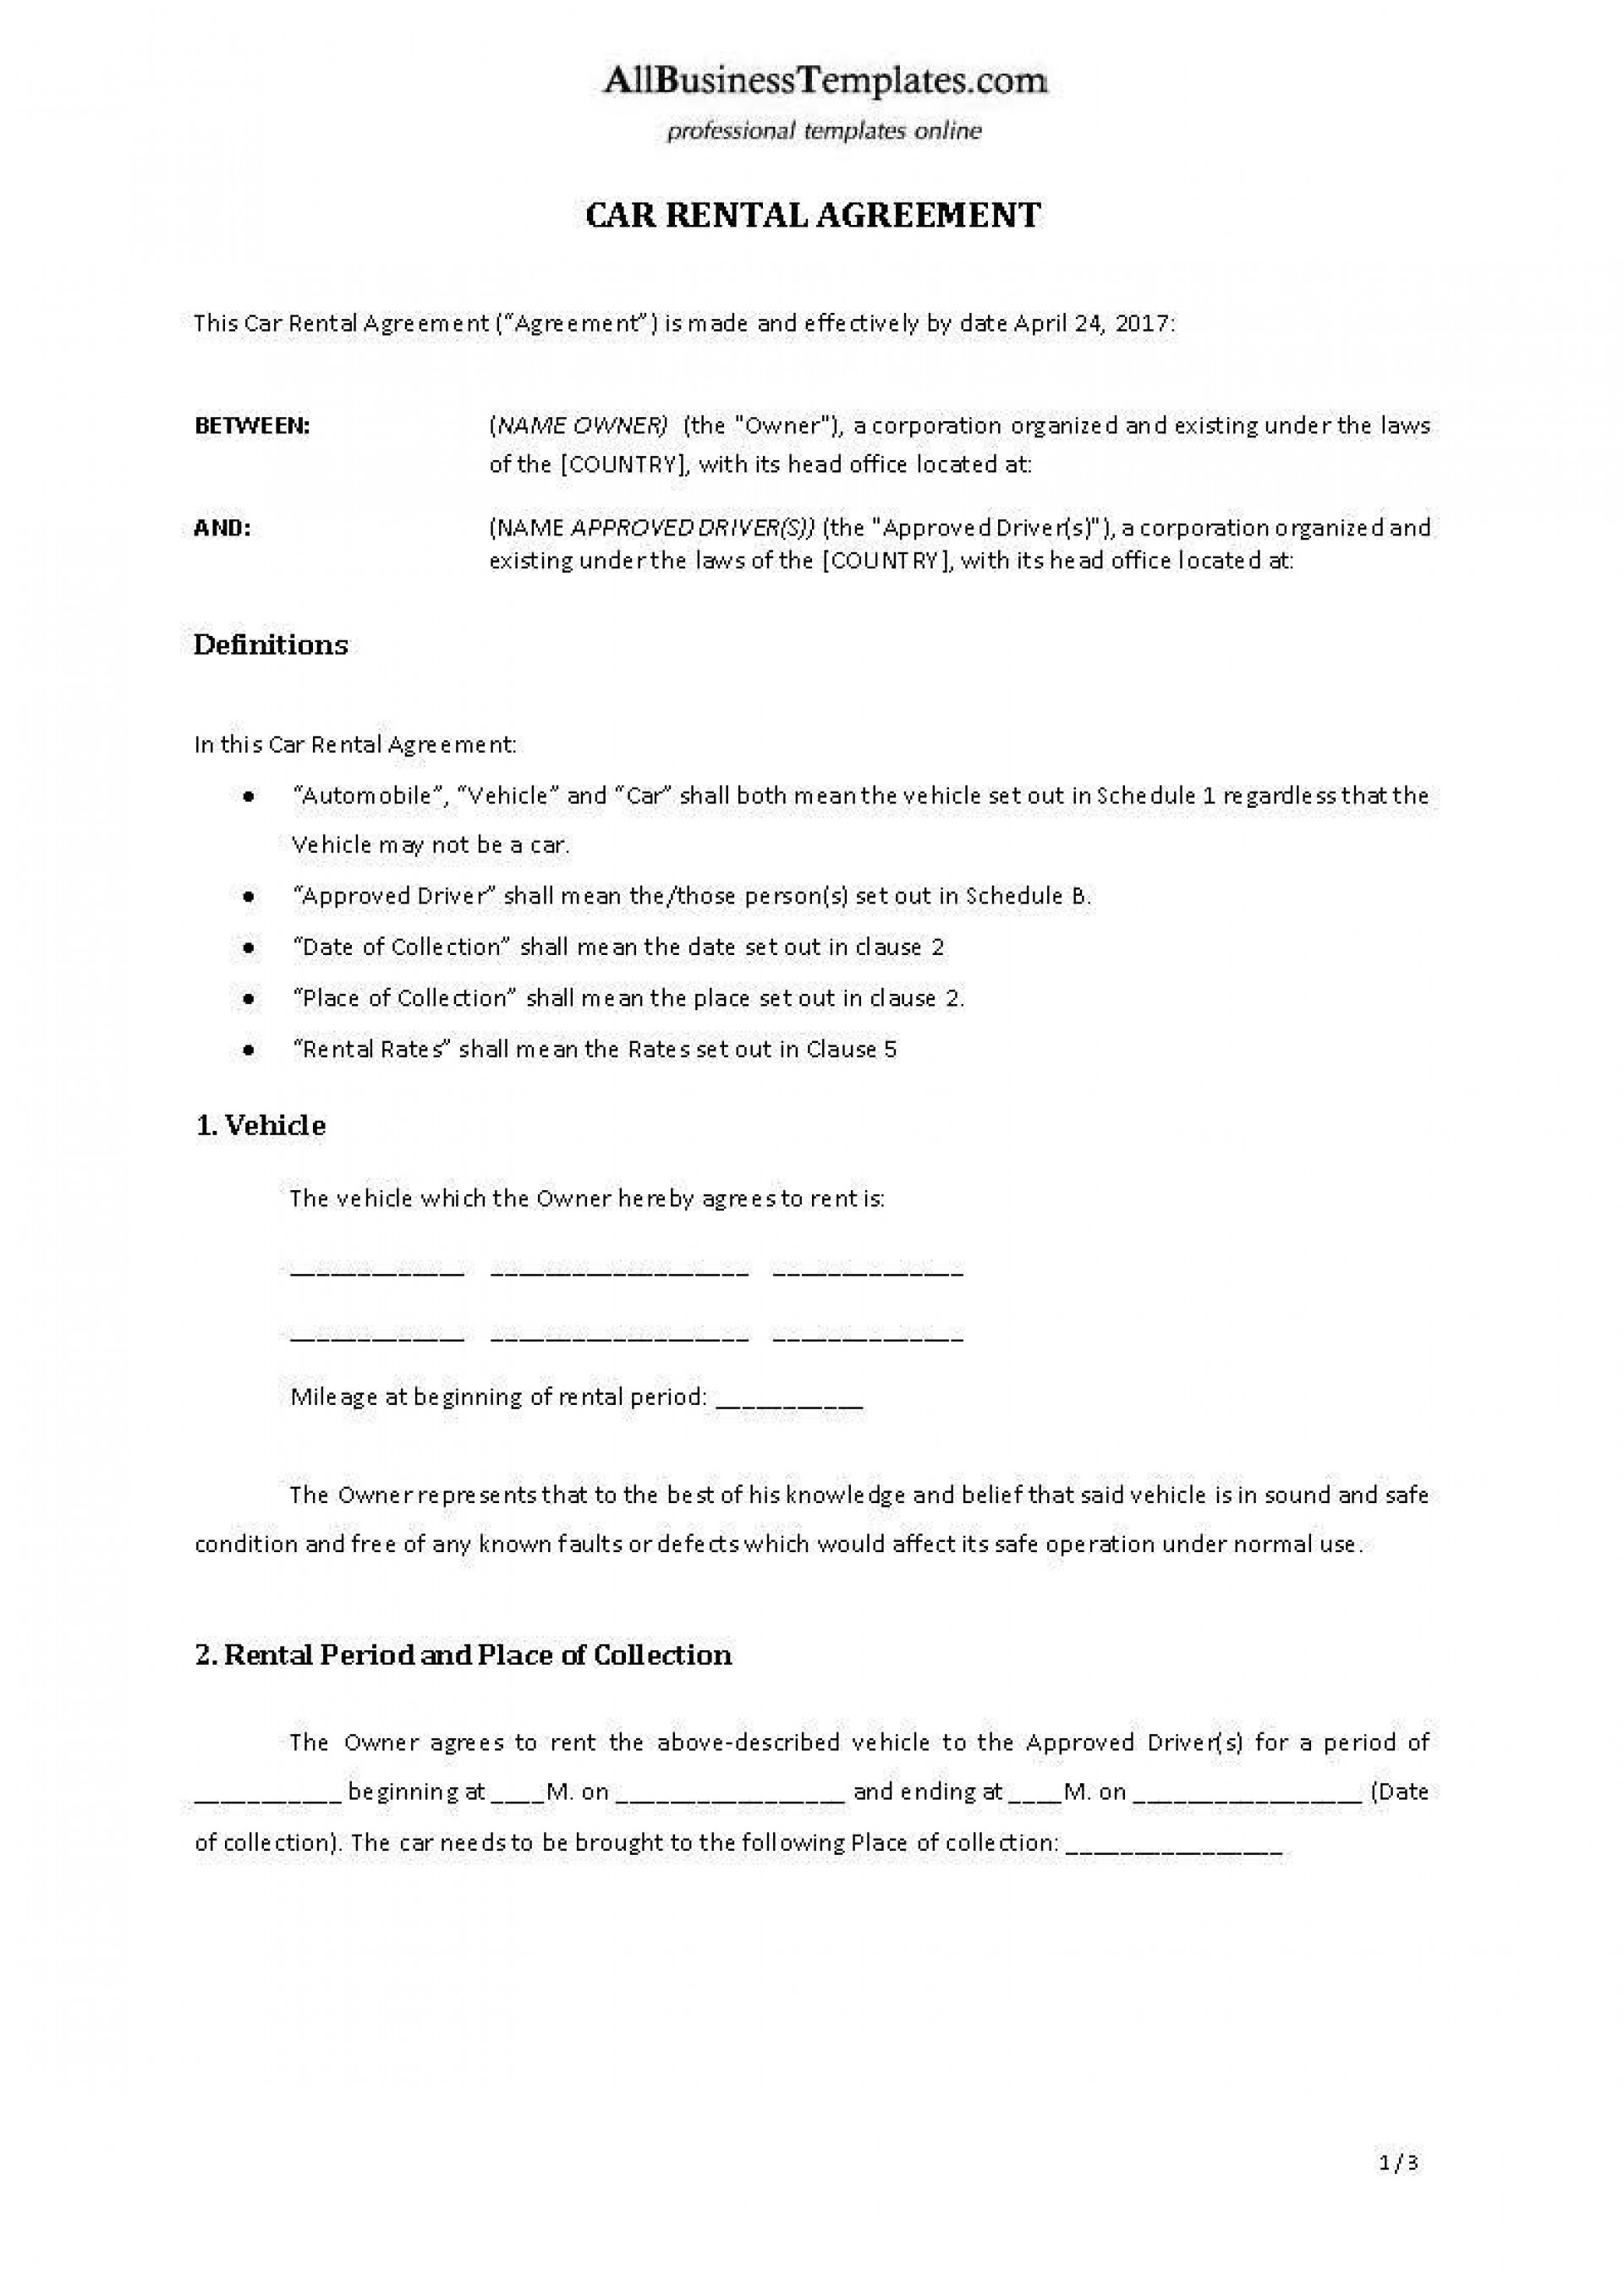 001 Surprising Template Car Rental Form Inspiration  Checklist Free Printable1920